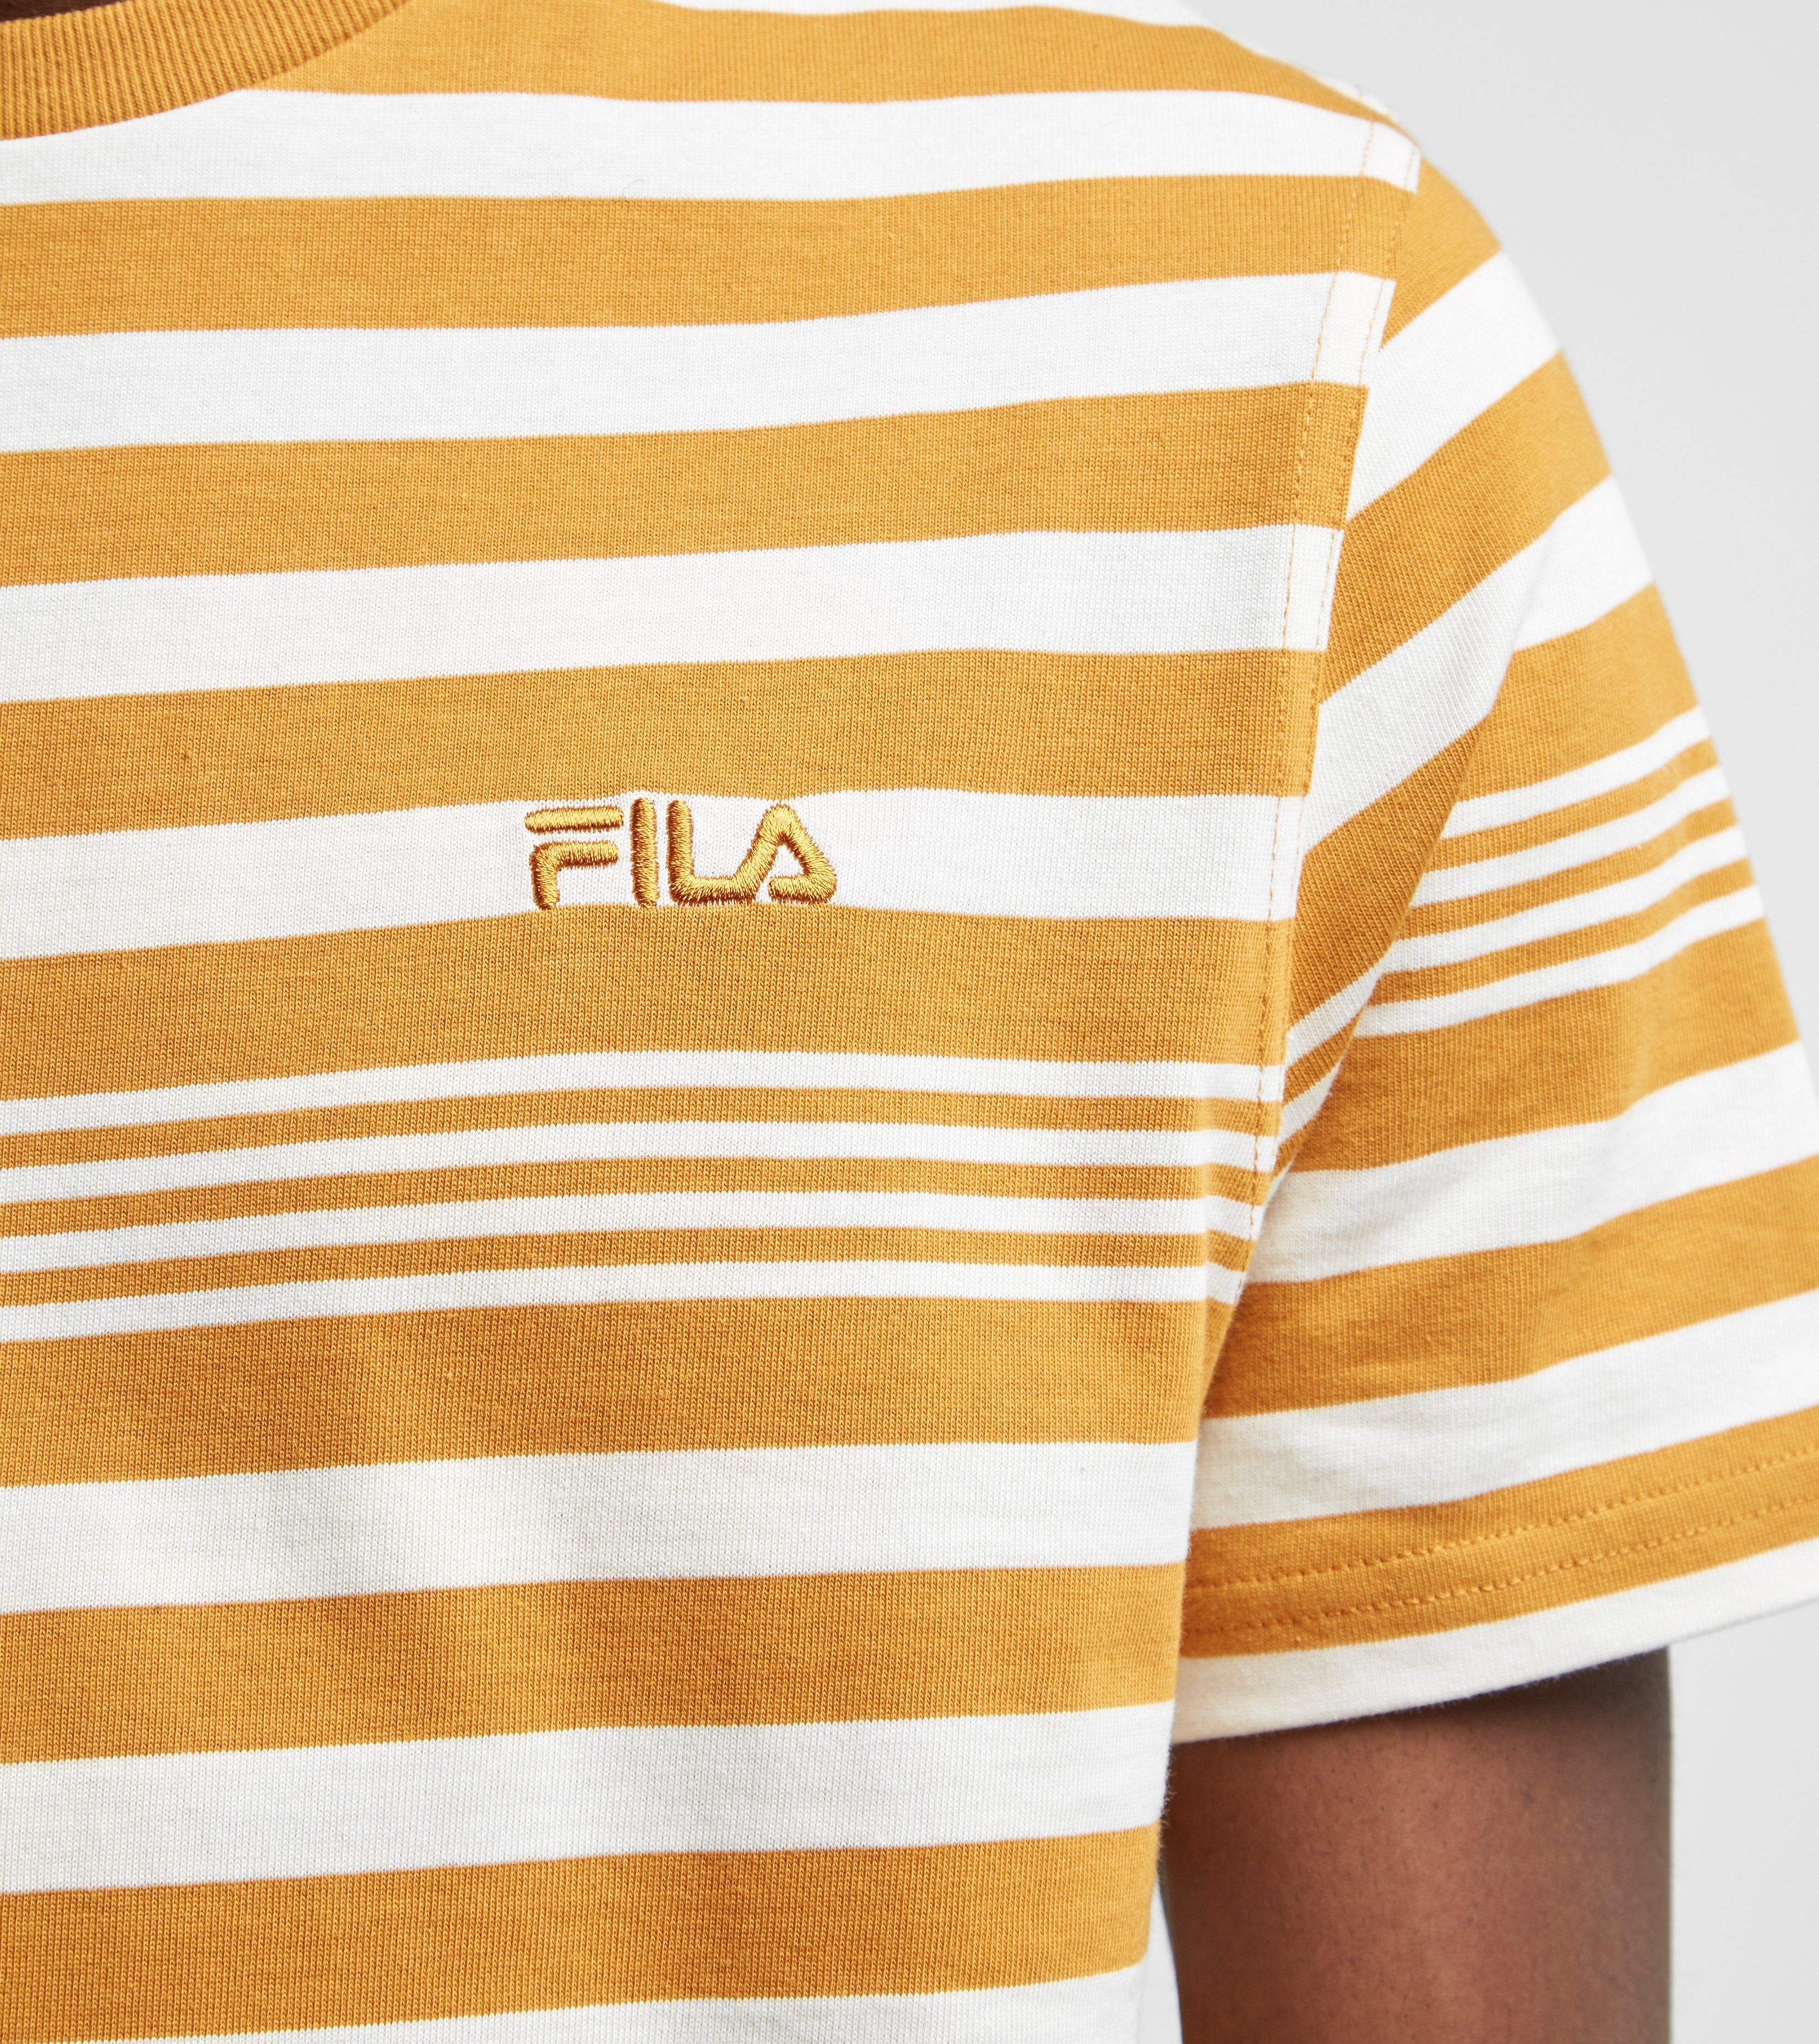 Fila Cometa Short Sleeve T-Shirt